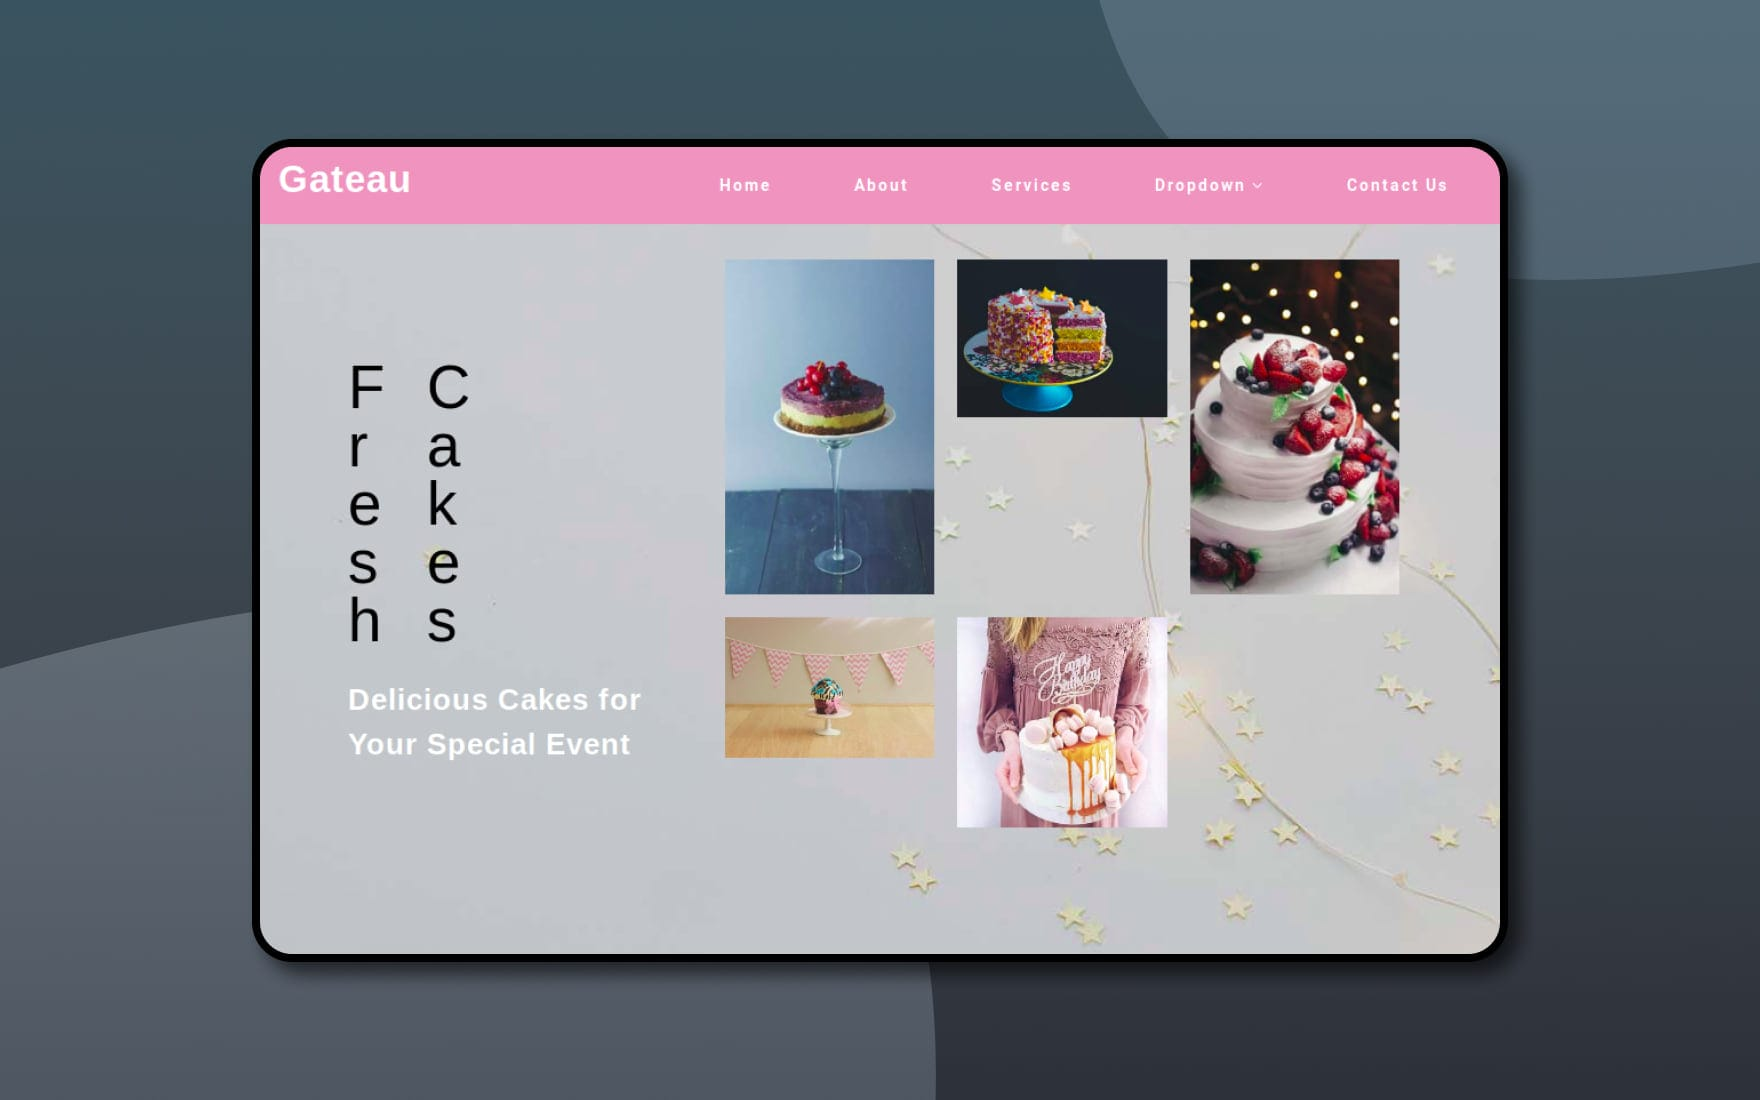 gateau-Boostrap-website-templates